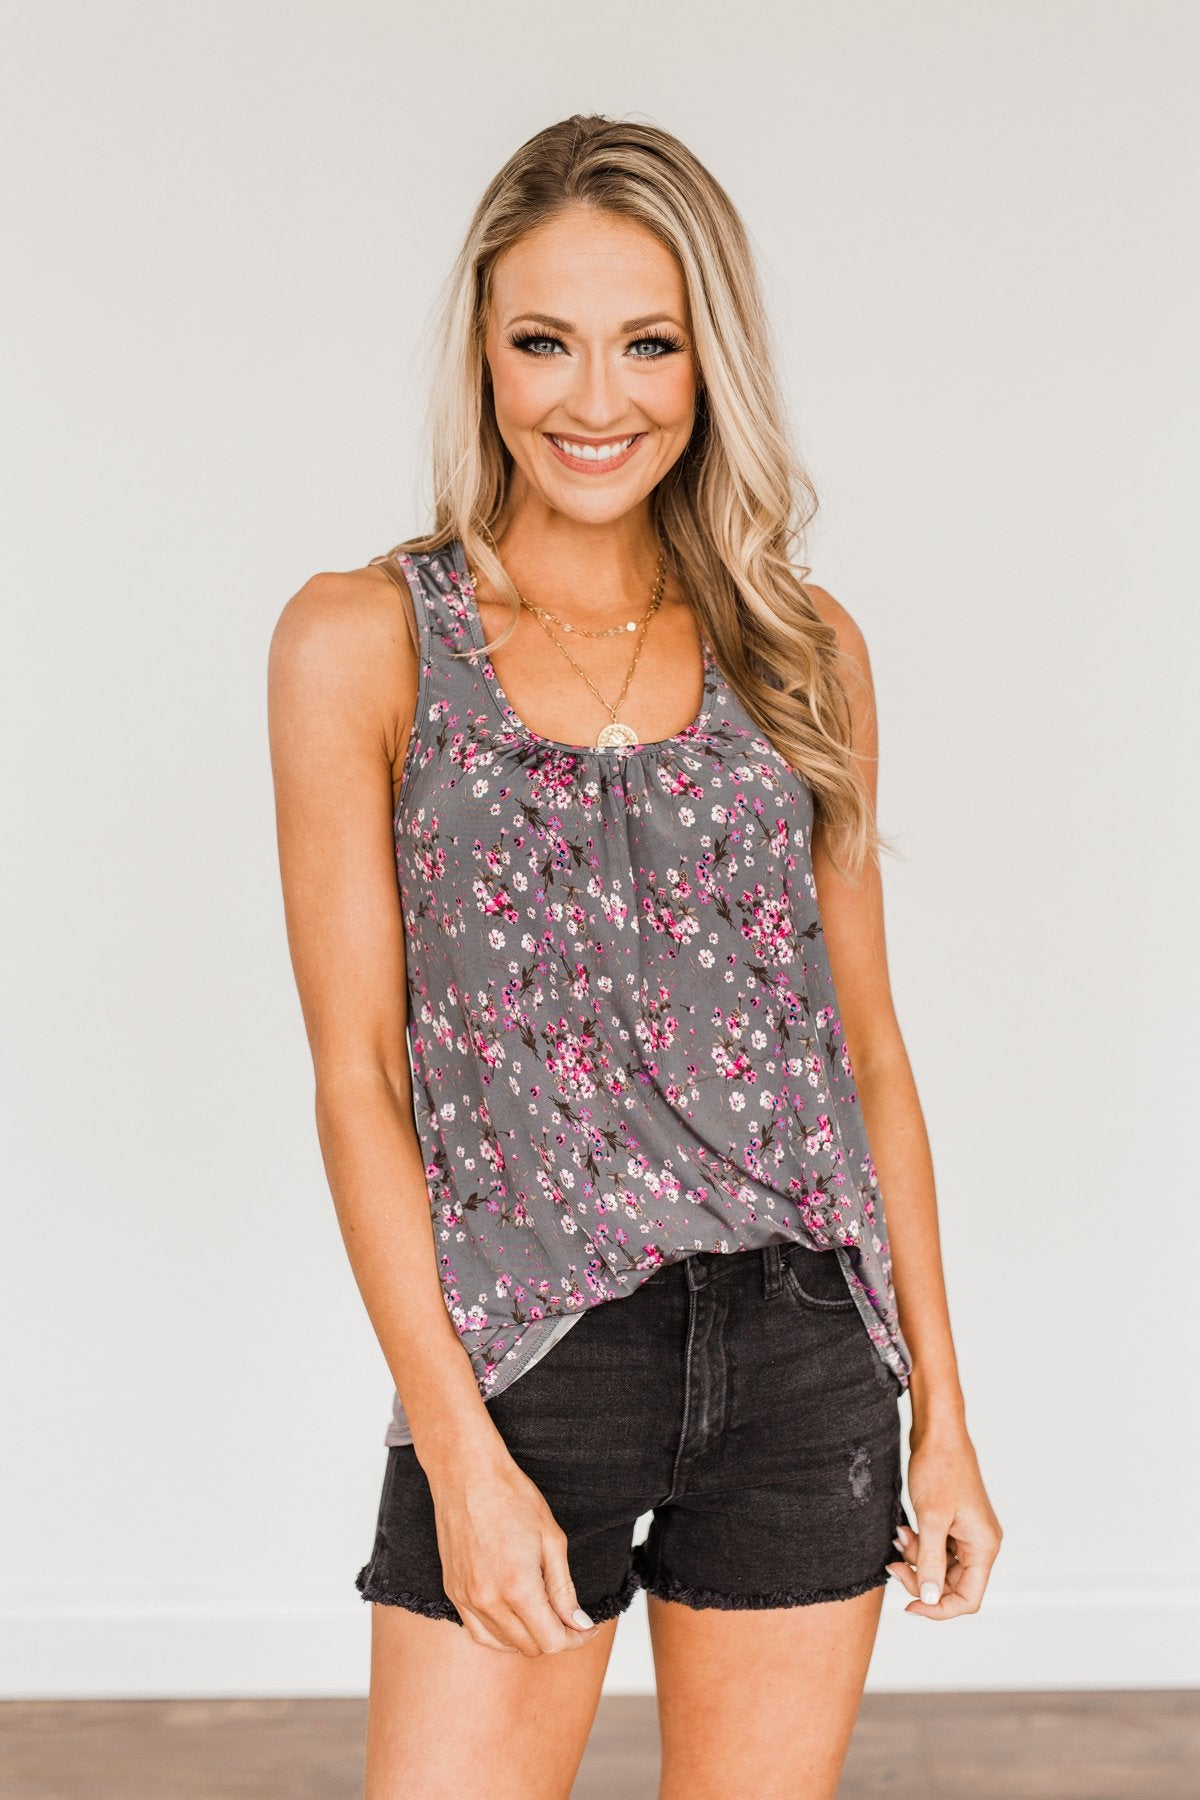 Shared Moments Floral Tank Top- Charcoal & Pink